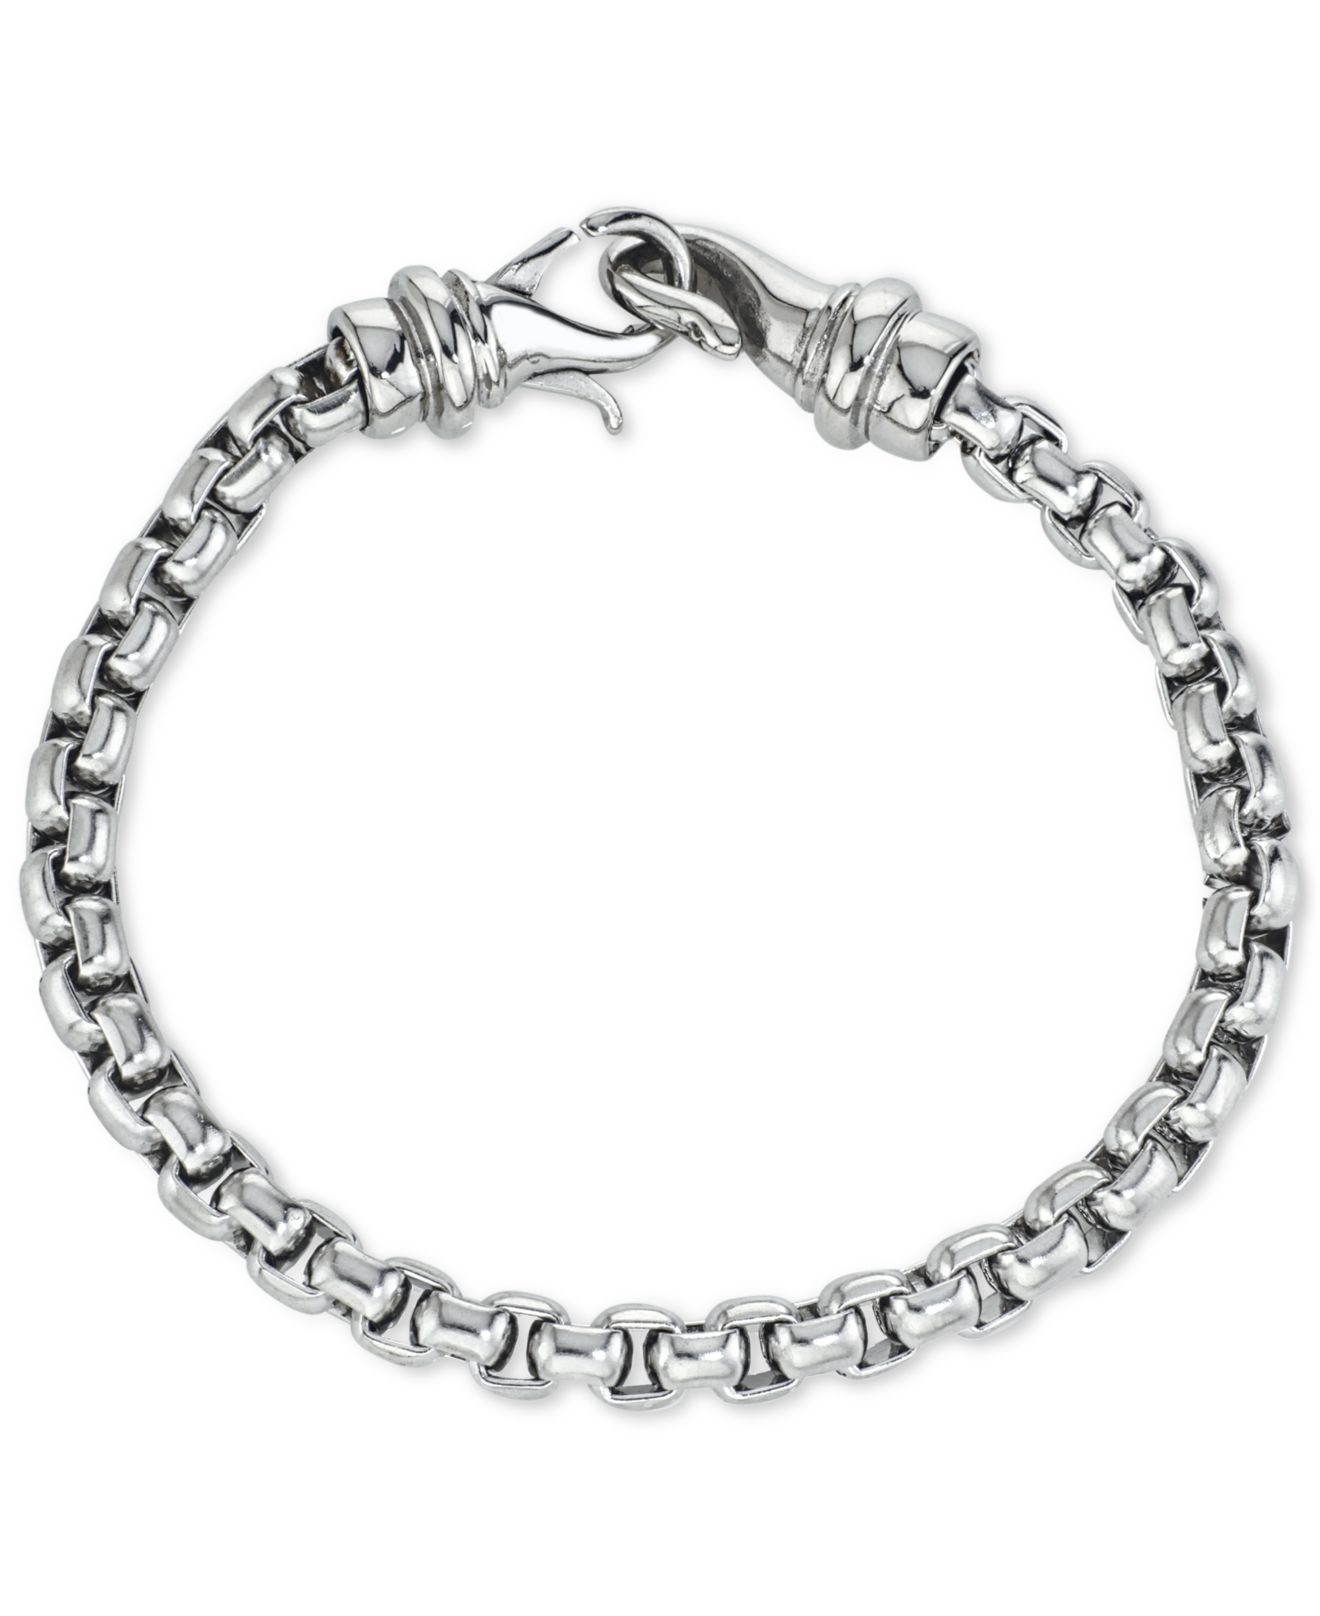 macy s pandora bracelet macy s linked bracelet in stainless steel in silver 9286